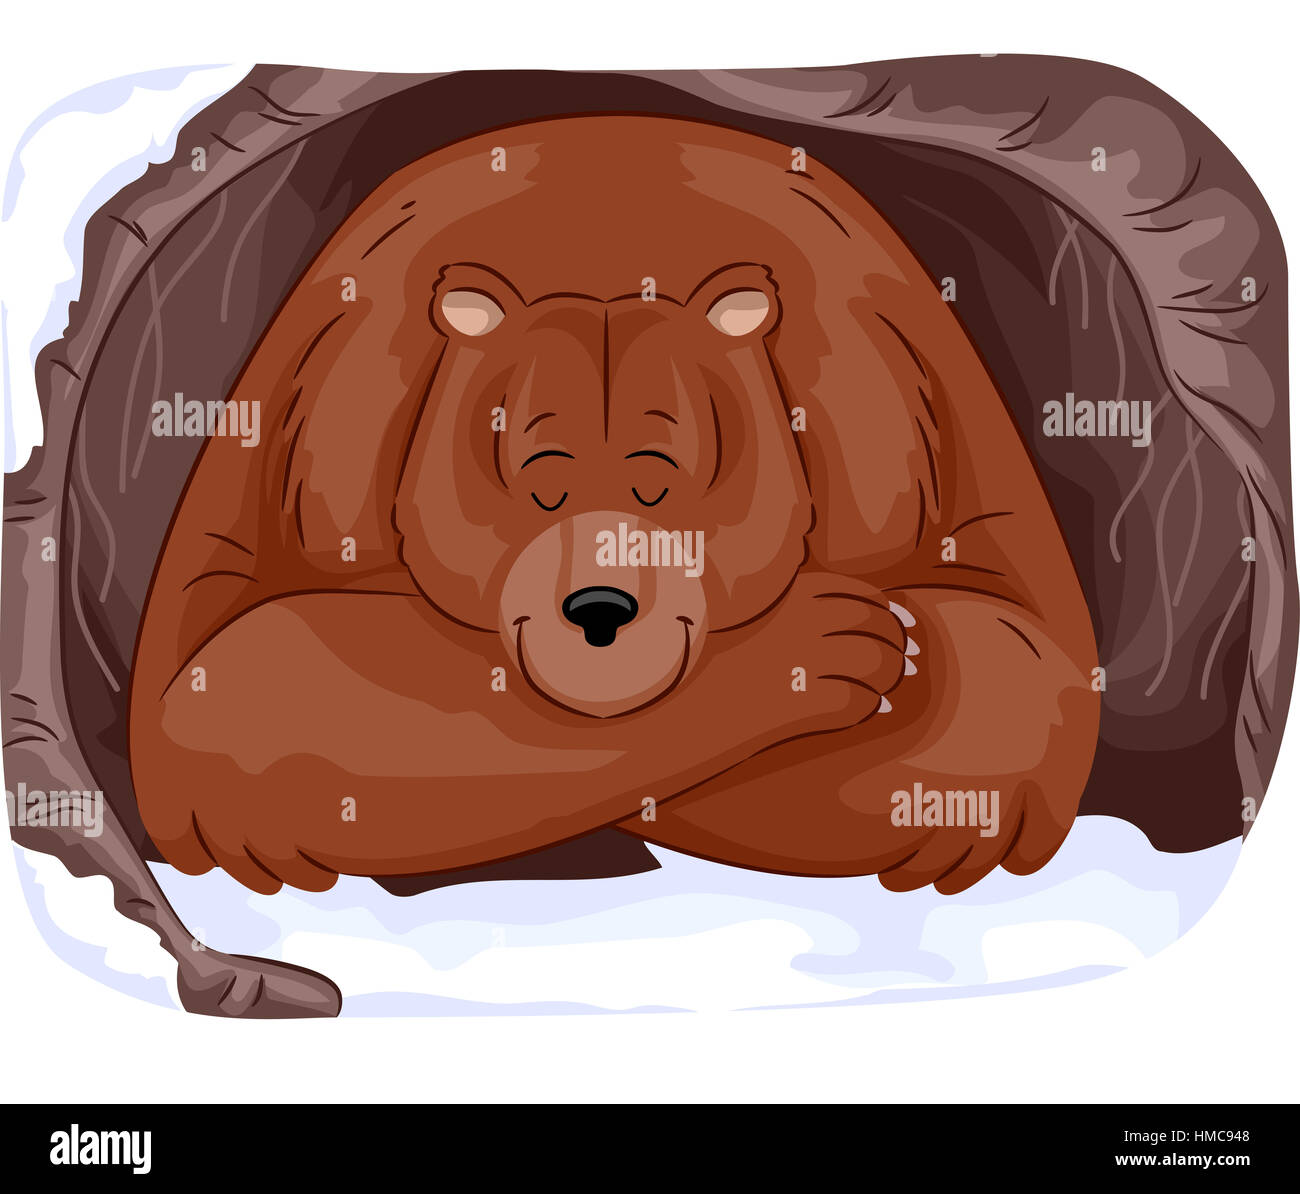 Animal Illustration of a Large Grizzly Bear Hibernating in a Cave During Winter - Stock Image